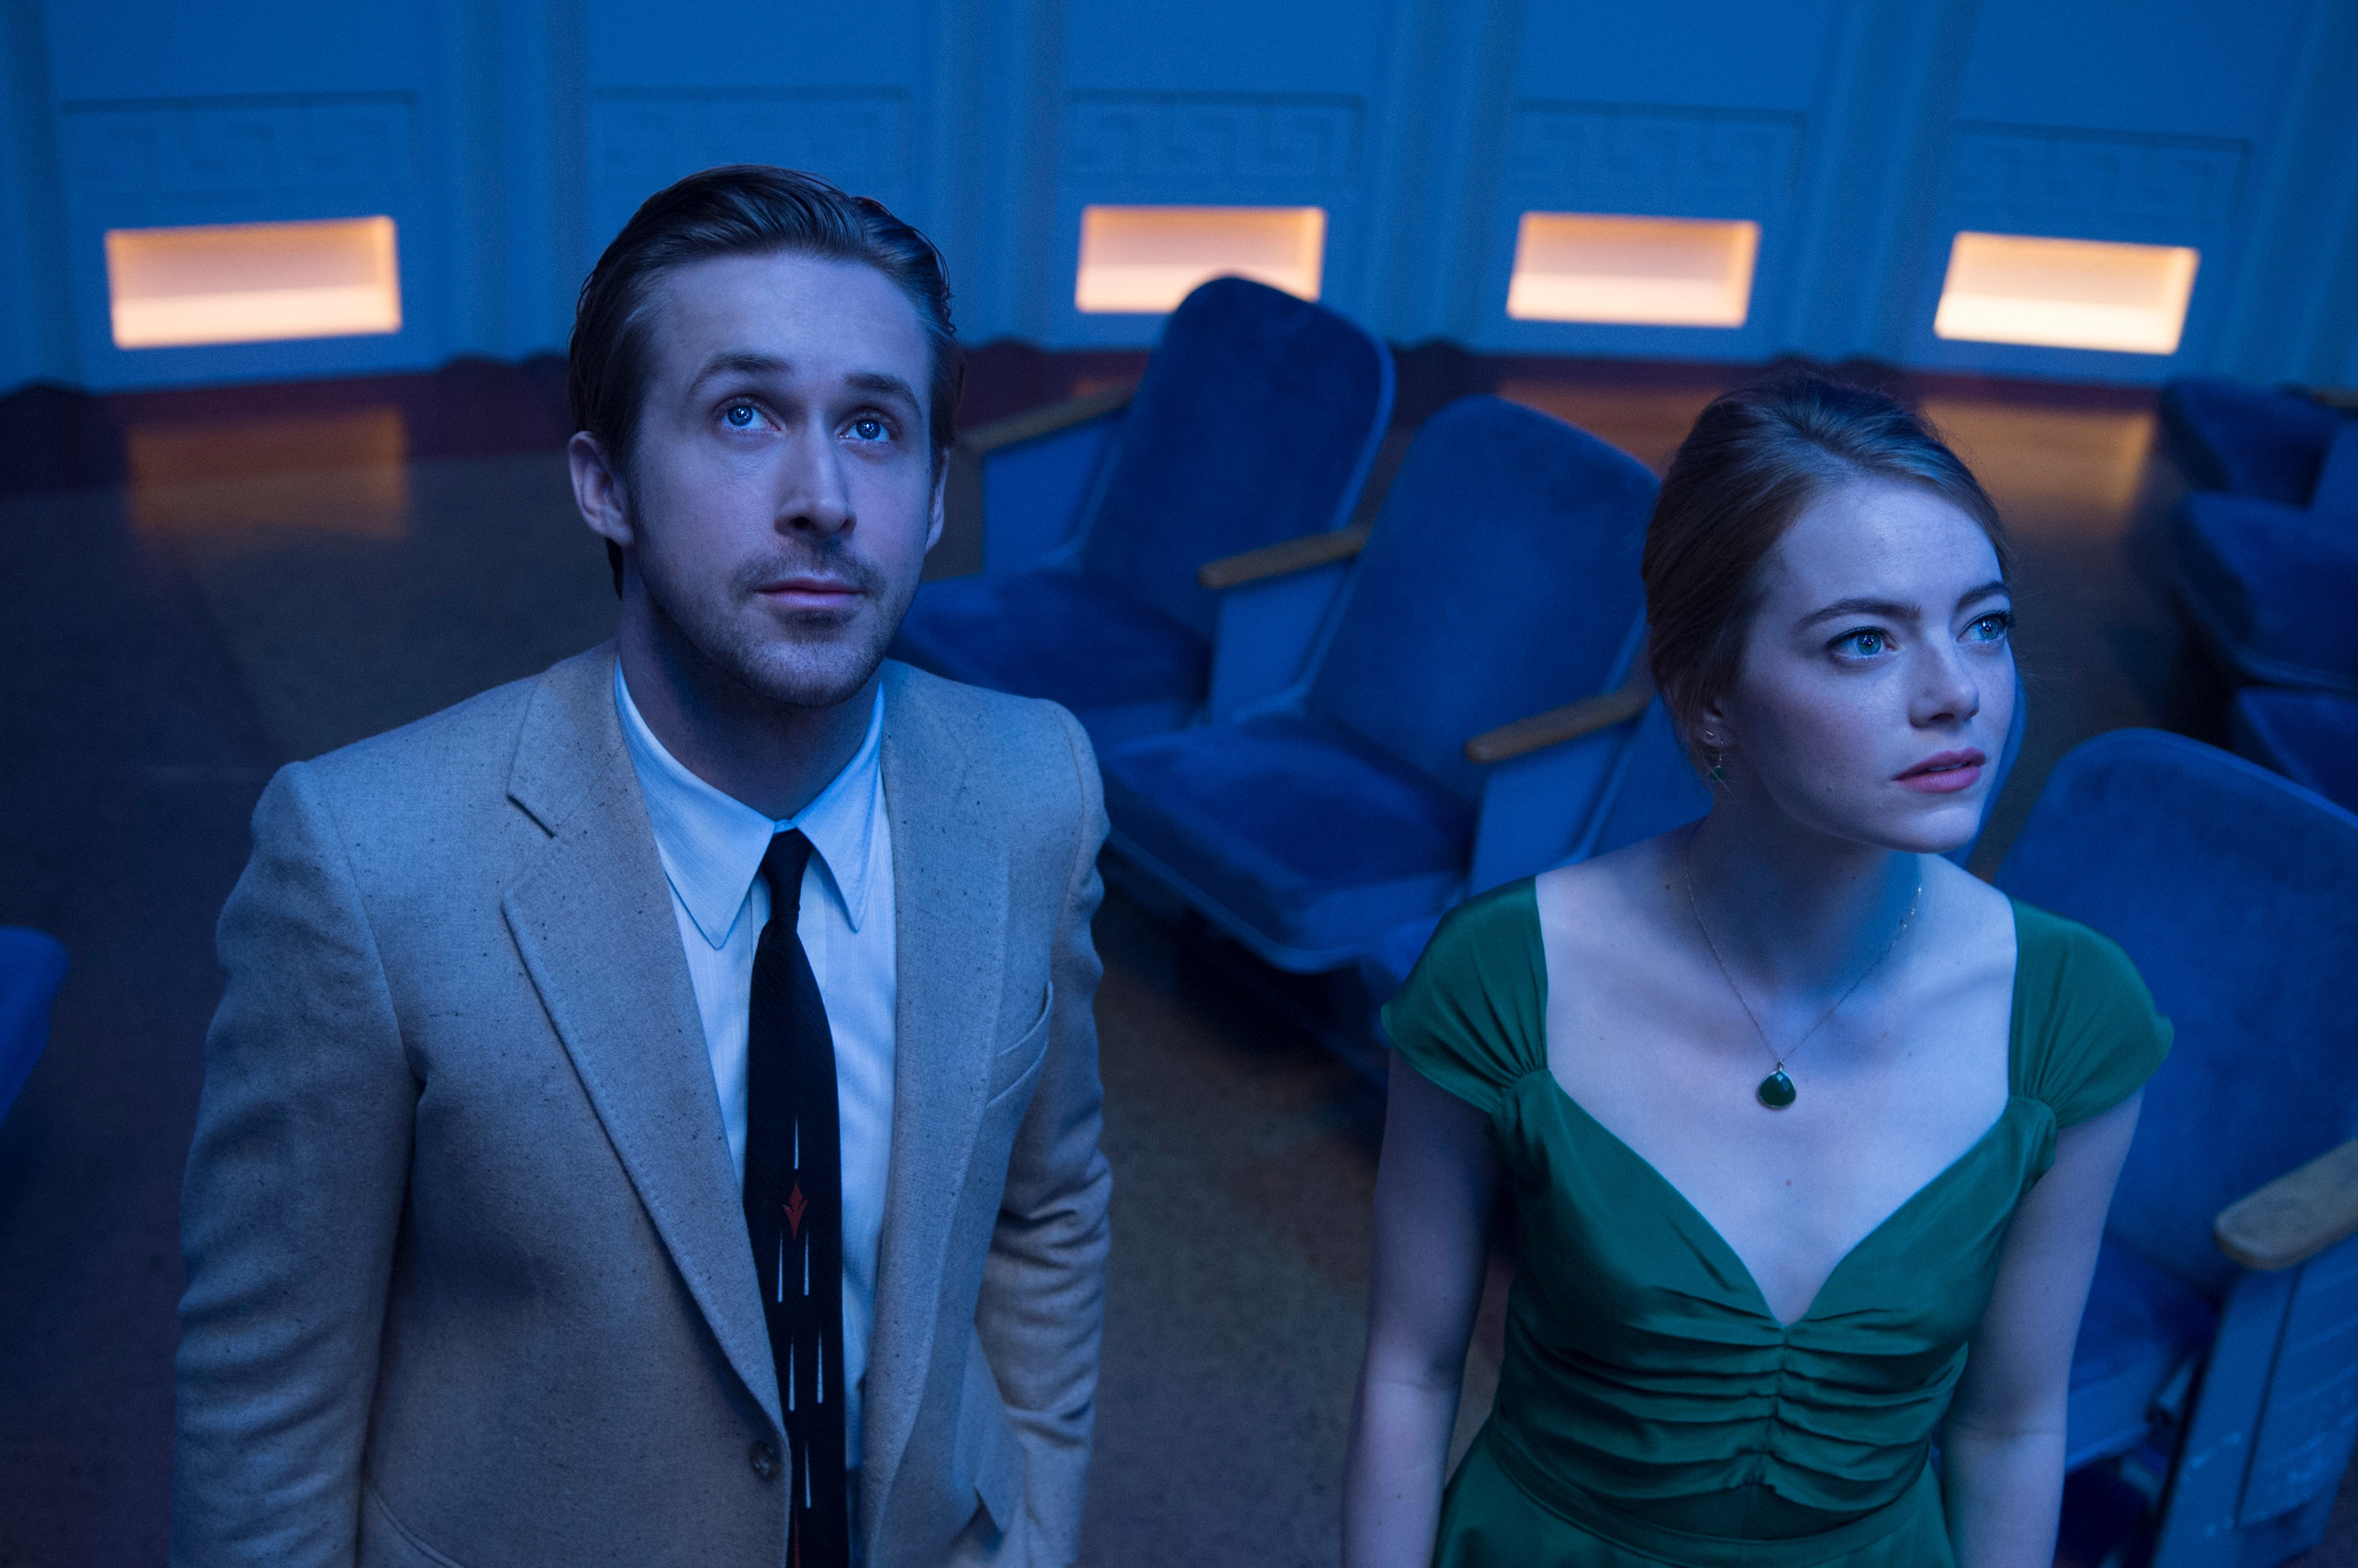 Ryan Gosling and Emma Stone looking up